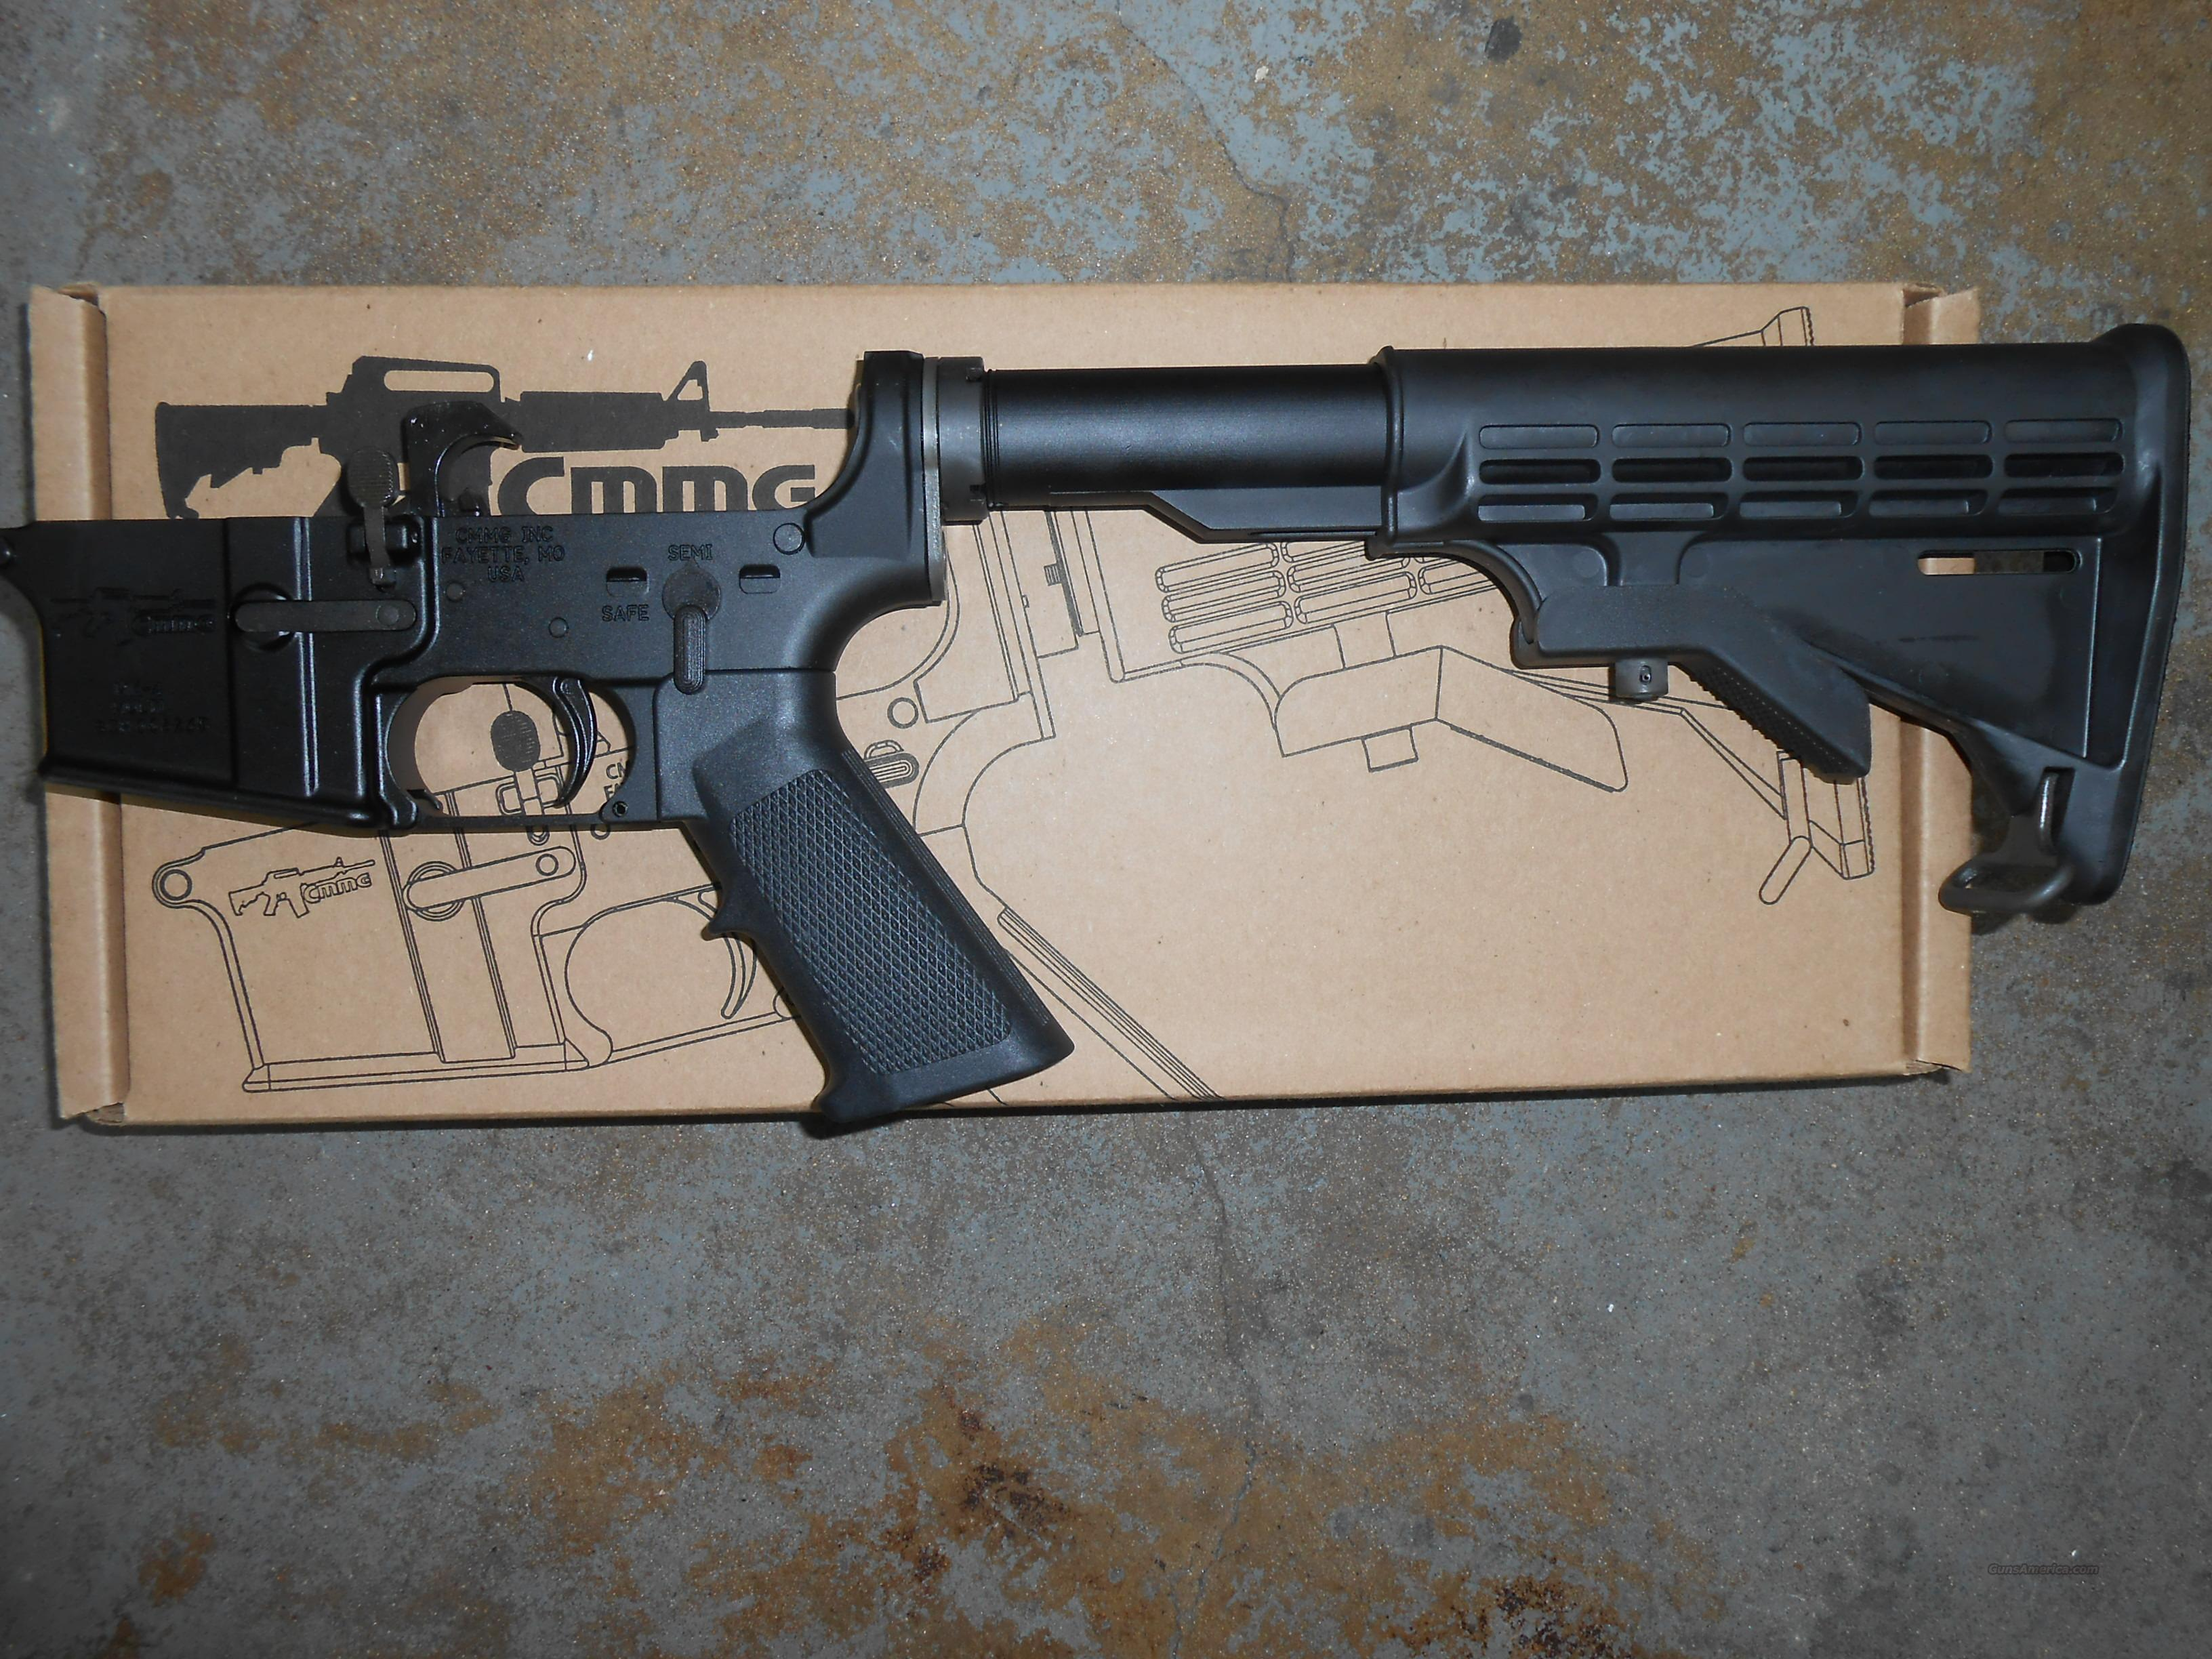 CMMG COMPLETE LOWER  Guns > Rifles > AR-15 Rifles - Small Manufacturers > Lower Only